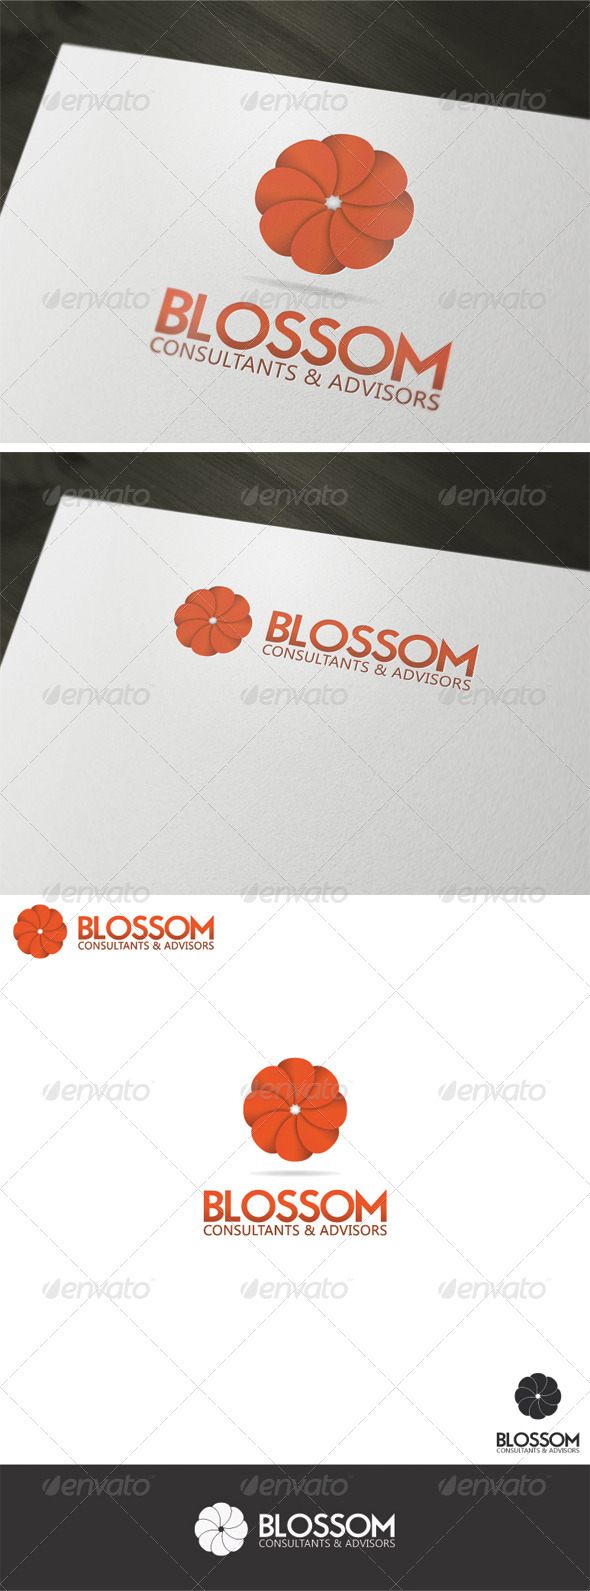 Blossom Logo Template - Vector Abstract